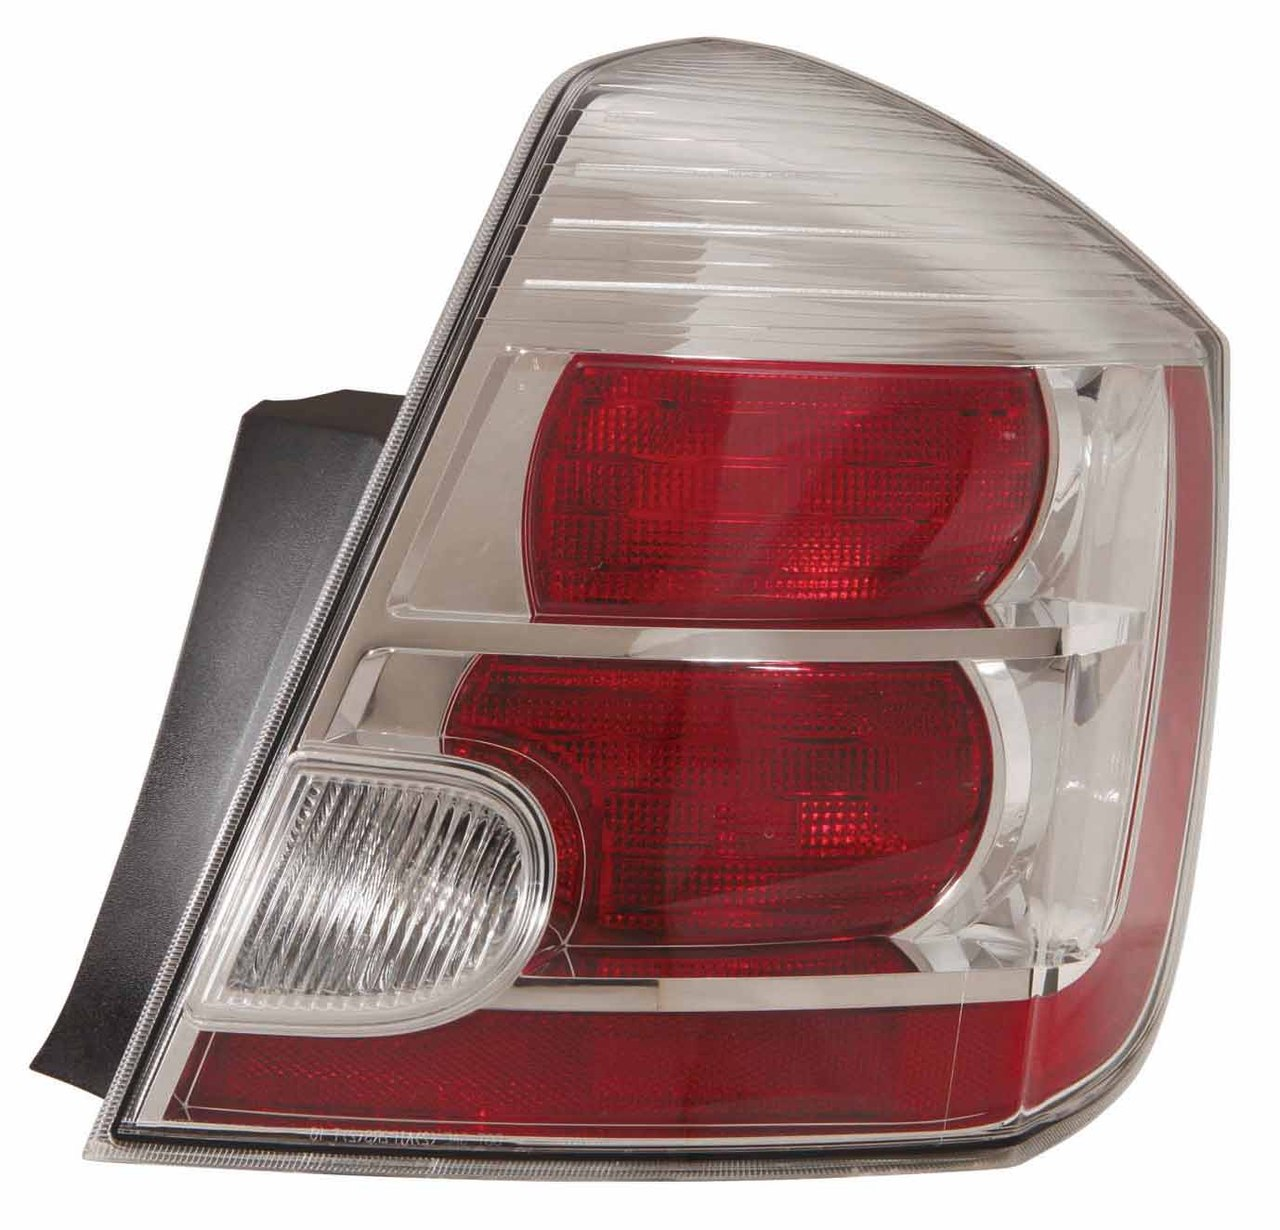 Nissan Sentra 2010 2011 2012 tail light right passenger